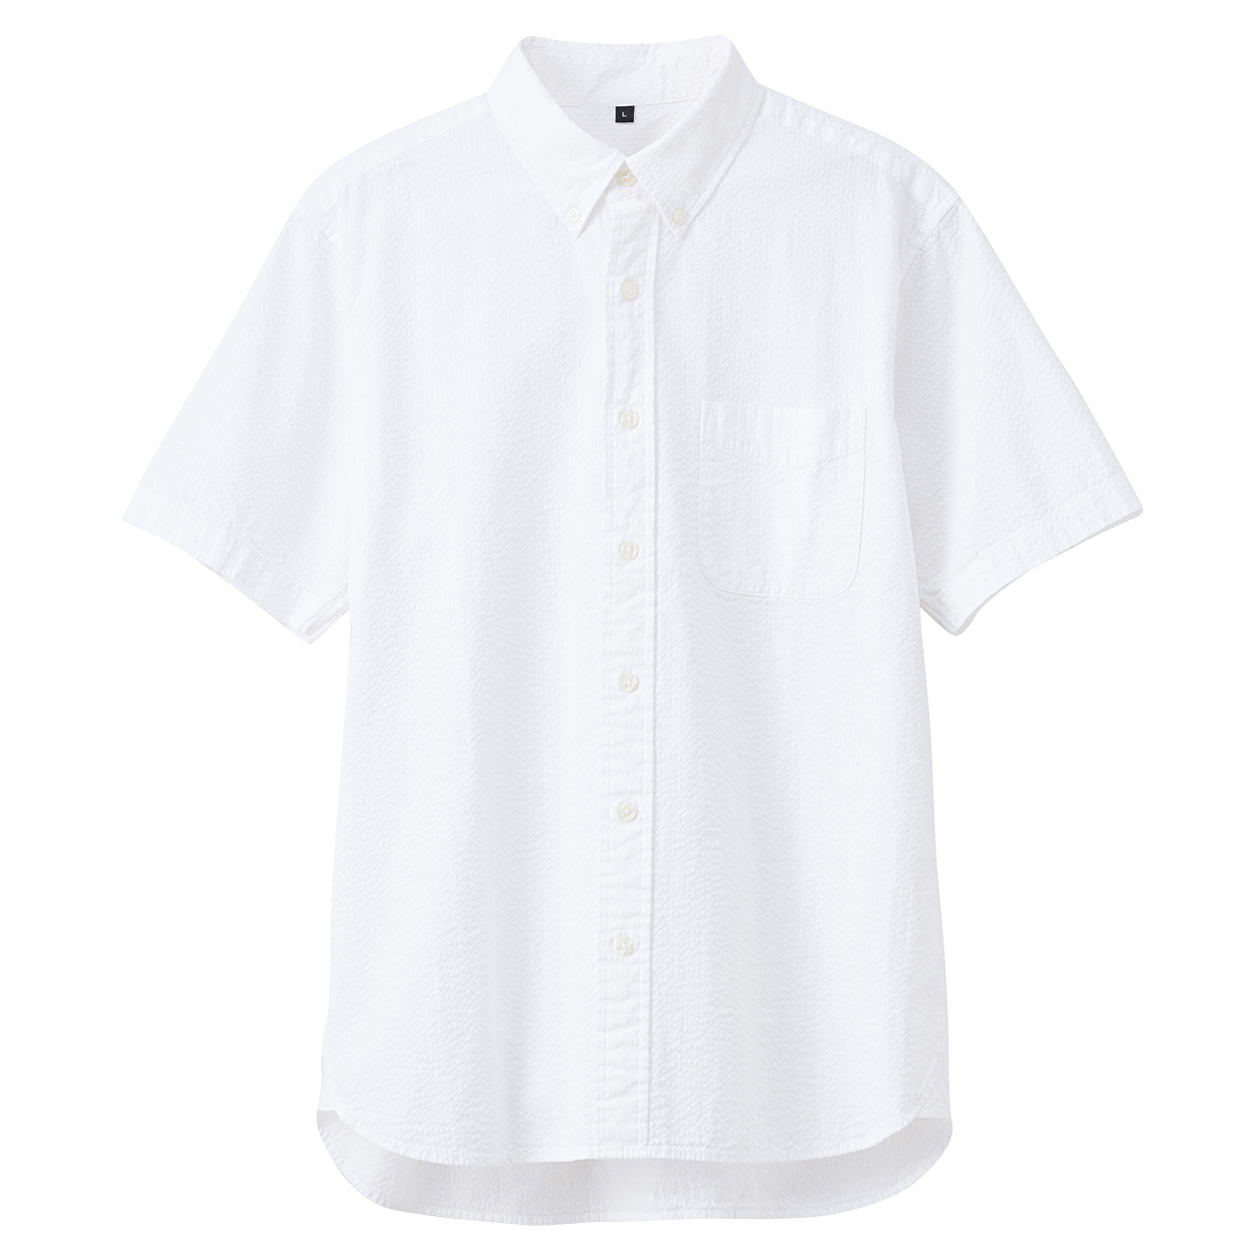 Organic Cotton Seersucer Short Sleeve Buttondown Shirt: White